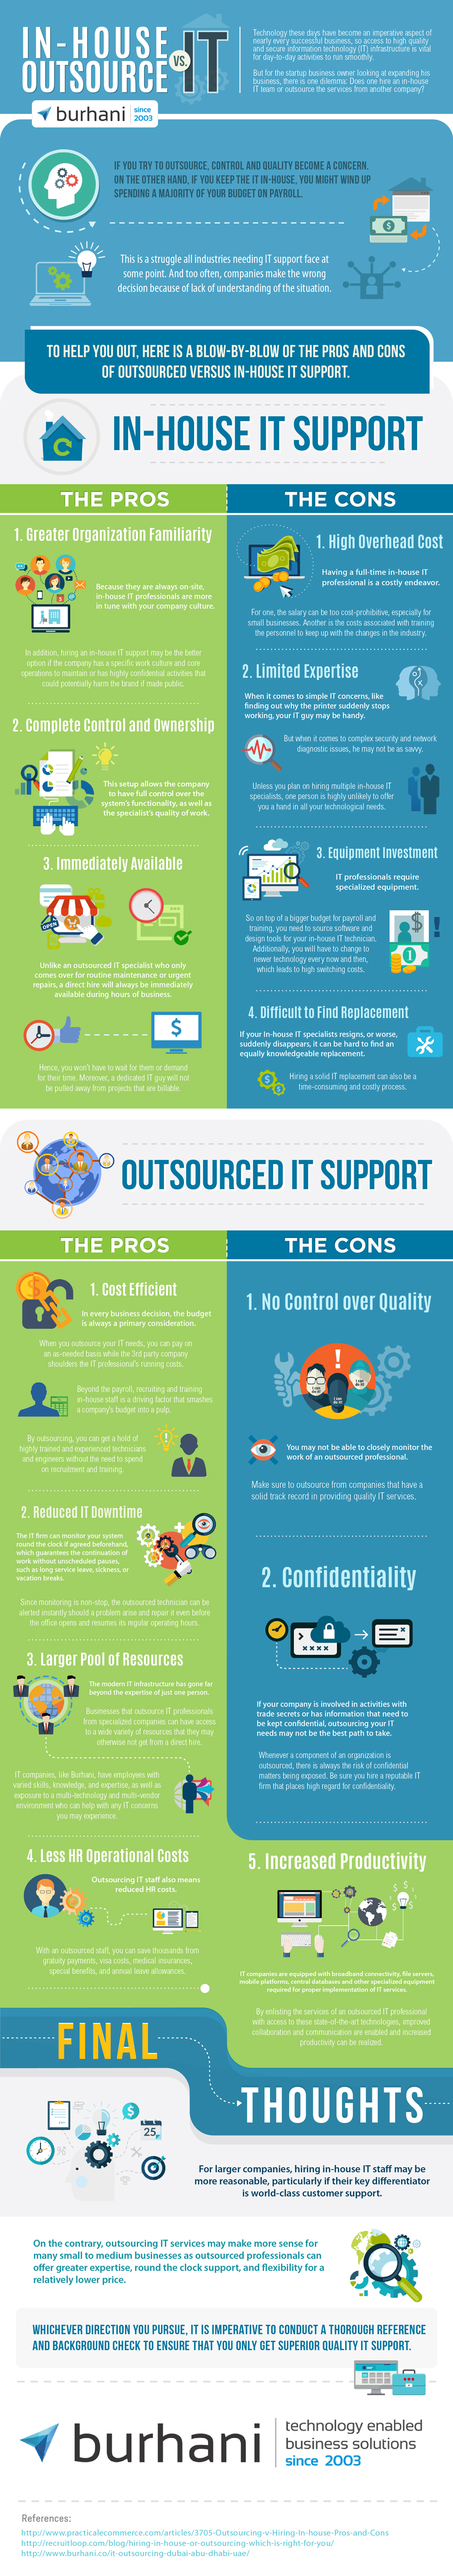 In-House IT versus Outsource IT (Infographic) - Image 1